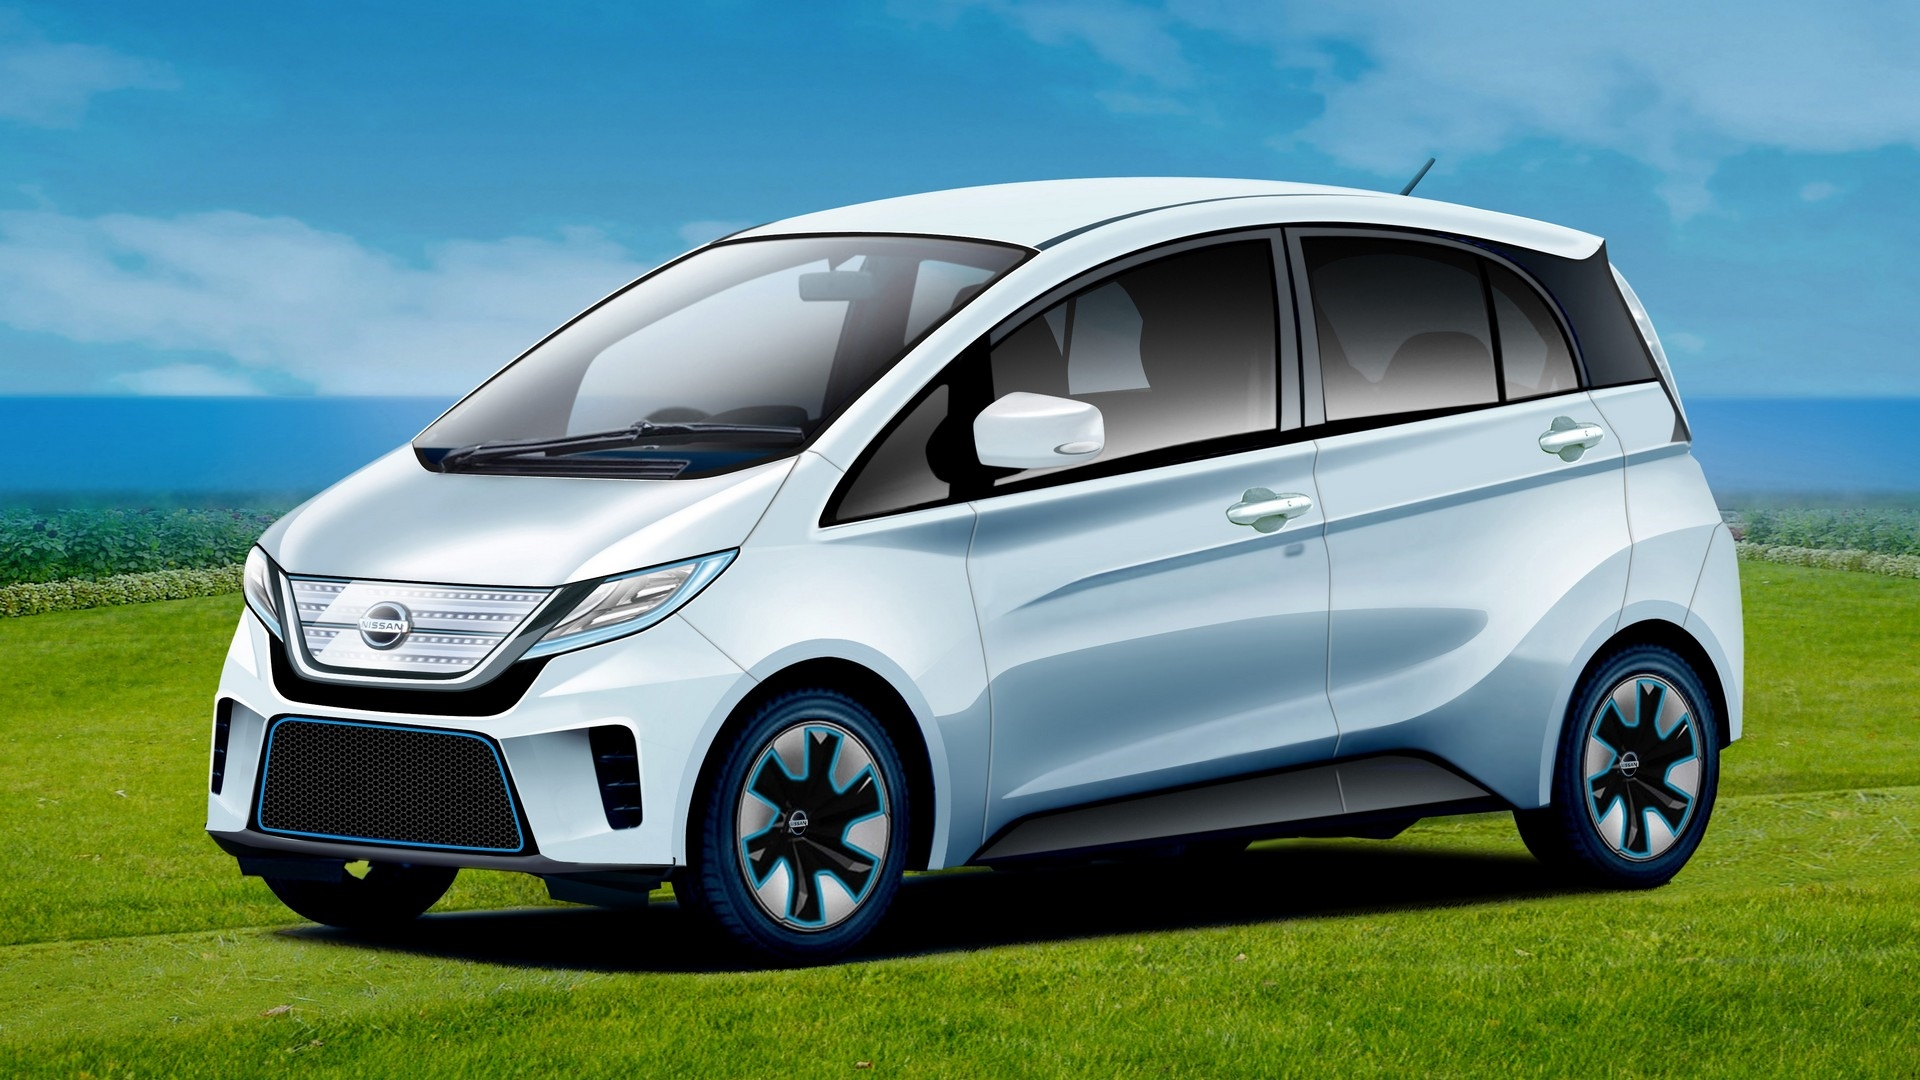 91 The Best 2020 Mitsubishi I MIEV New Concept